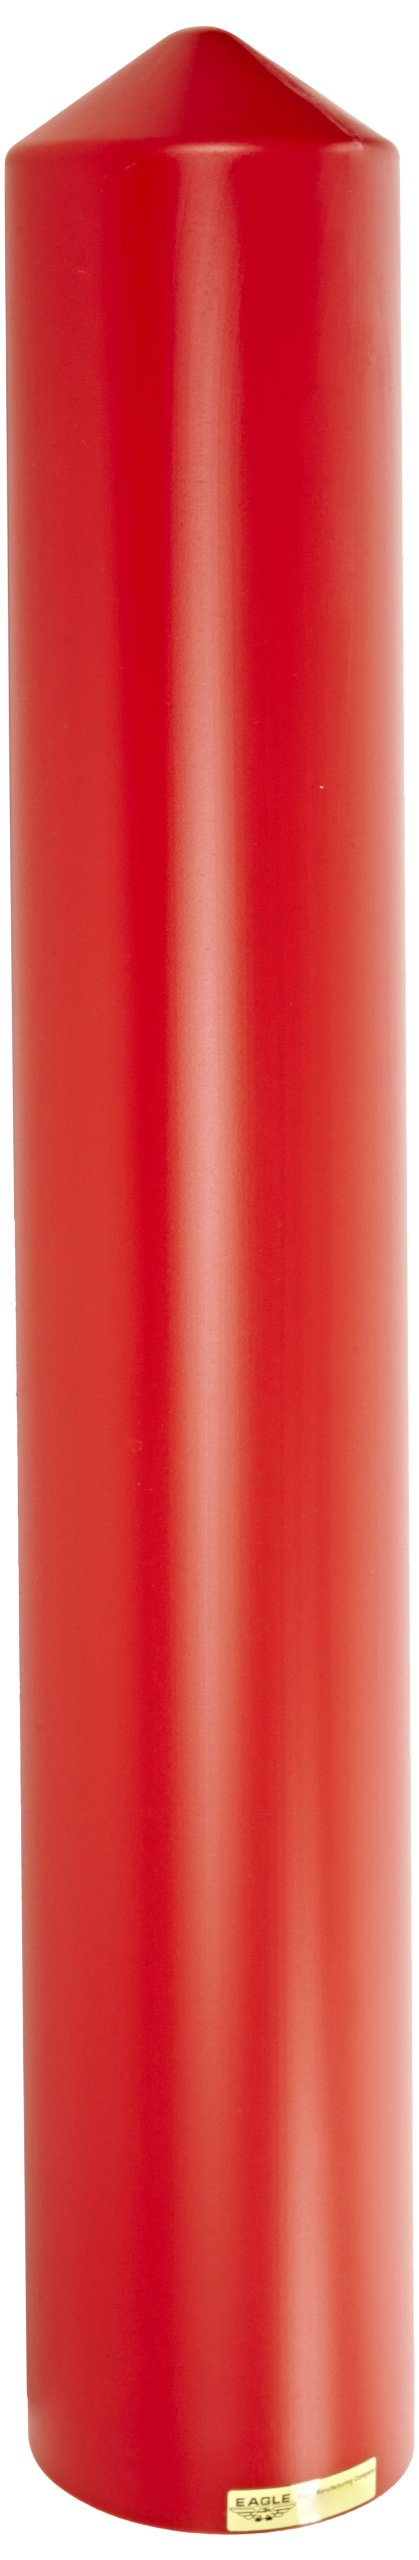 Eagle 1735R Smooth Post Sleeve, 4'' Size, Red, 5-1/4'' OD x 56'' Height